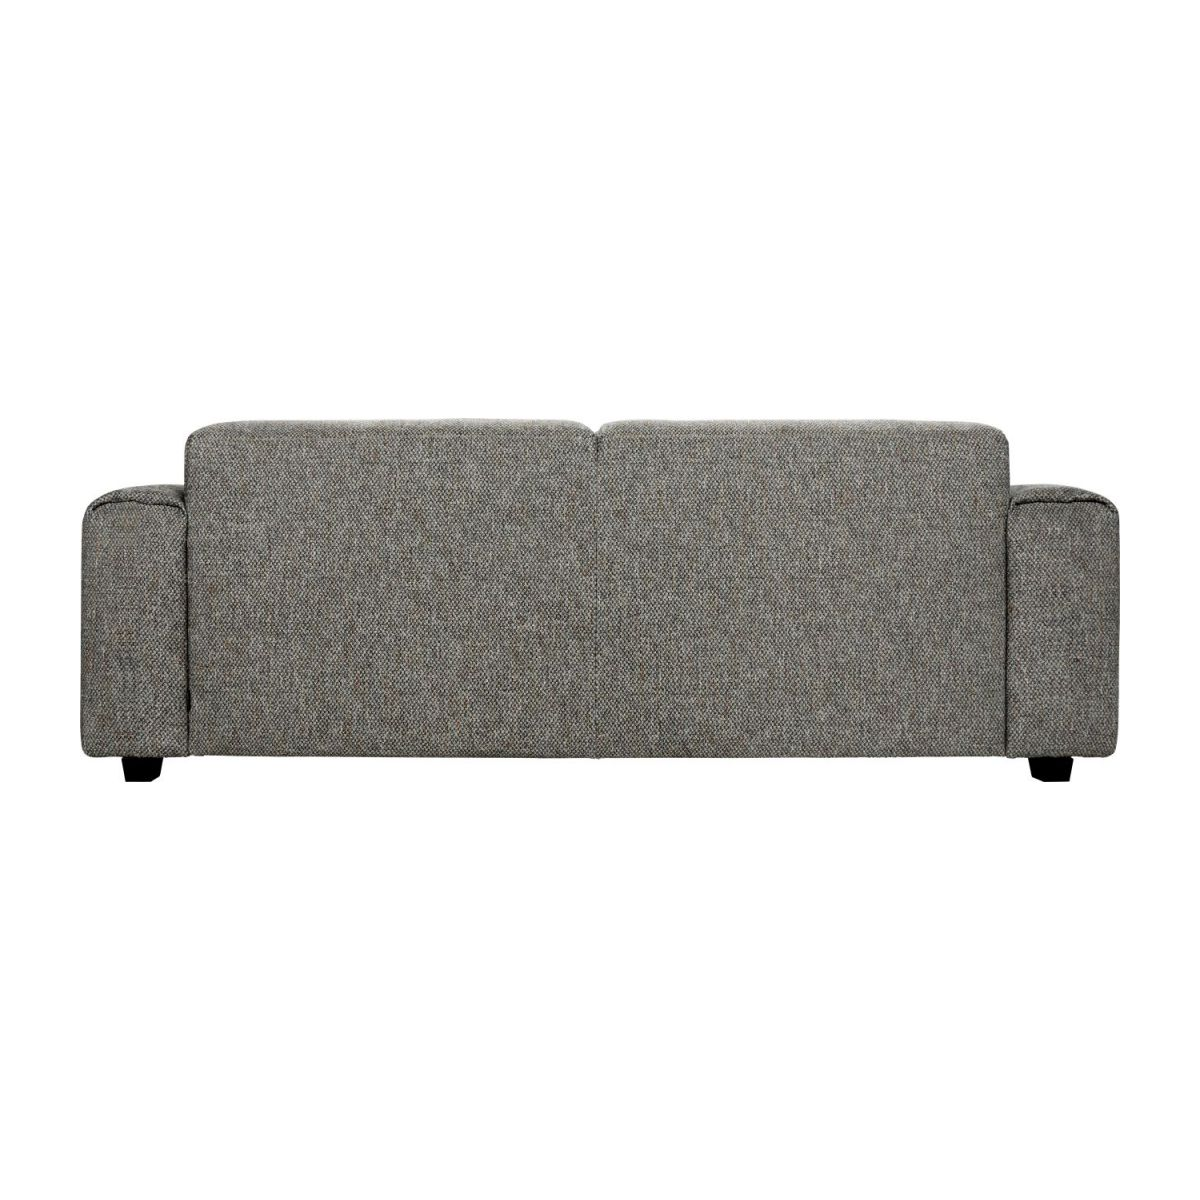 3-Sitzer Sofa aus Stoff Bellagio night black n°5